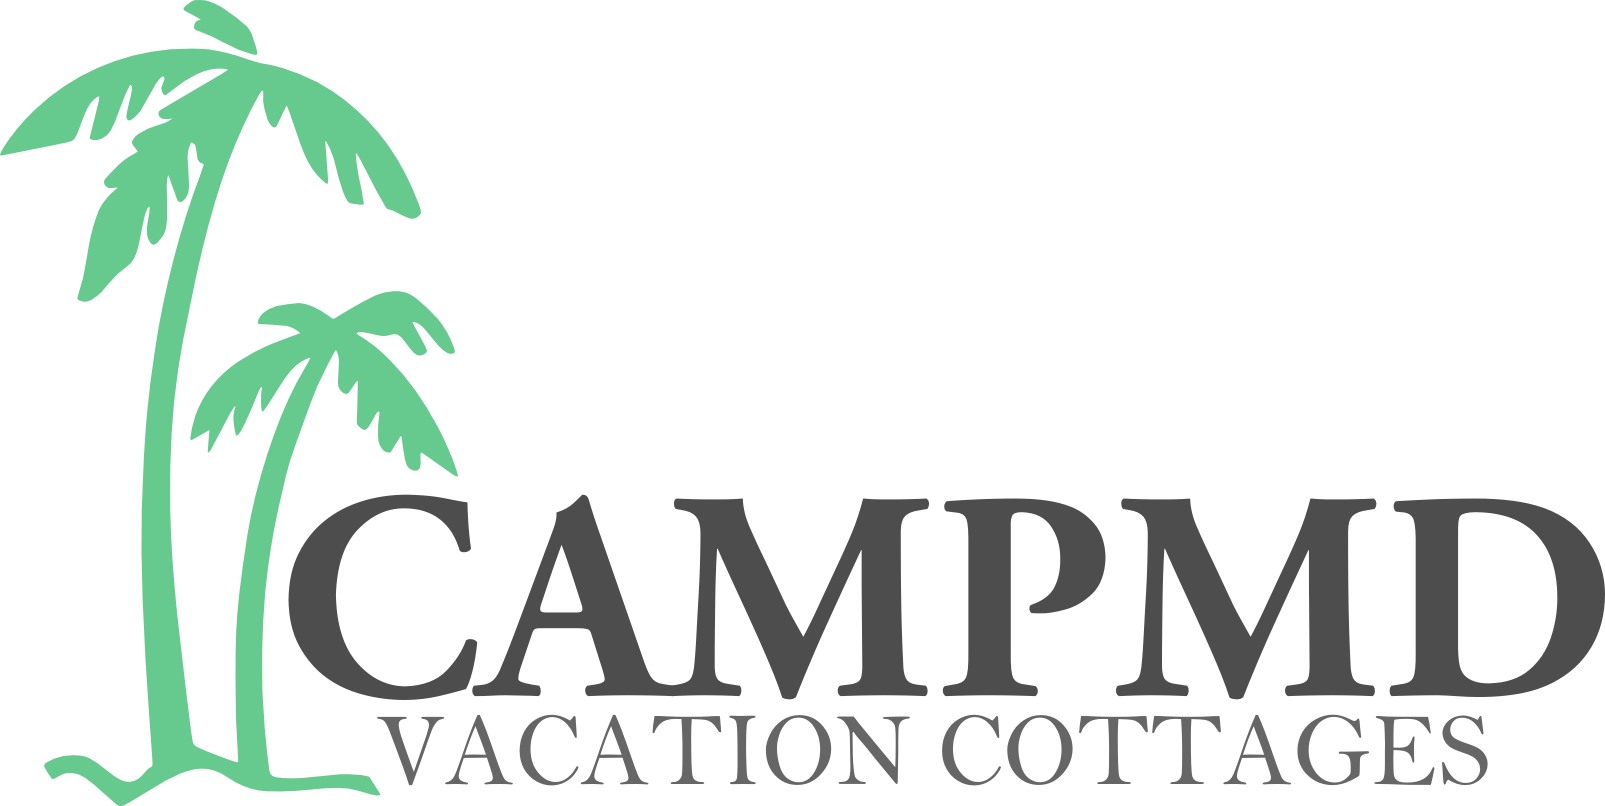 Camp Merryelande Vacation Cottages logo